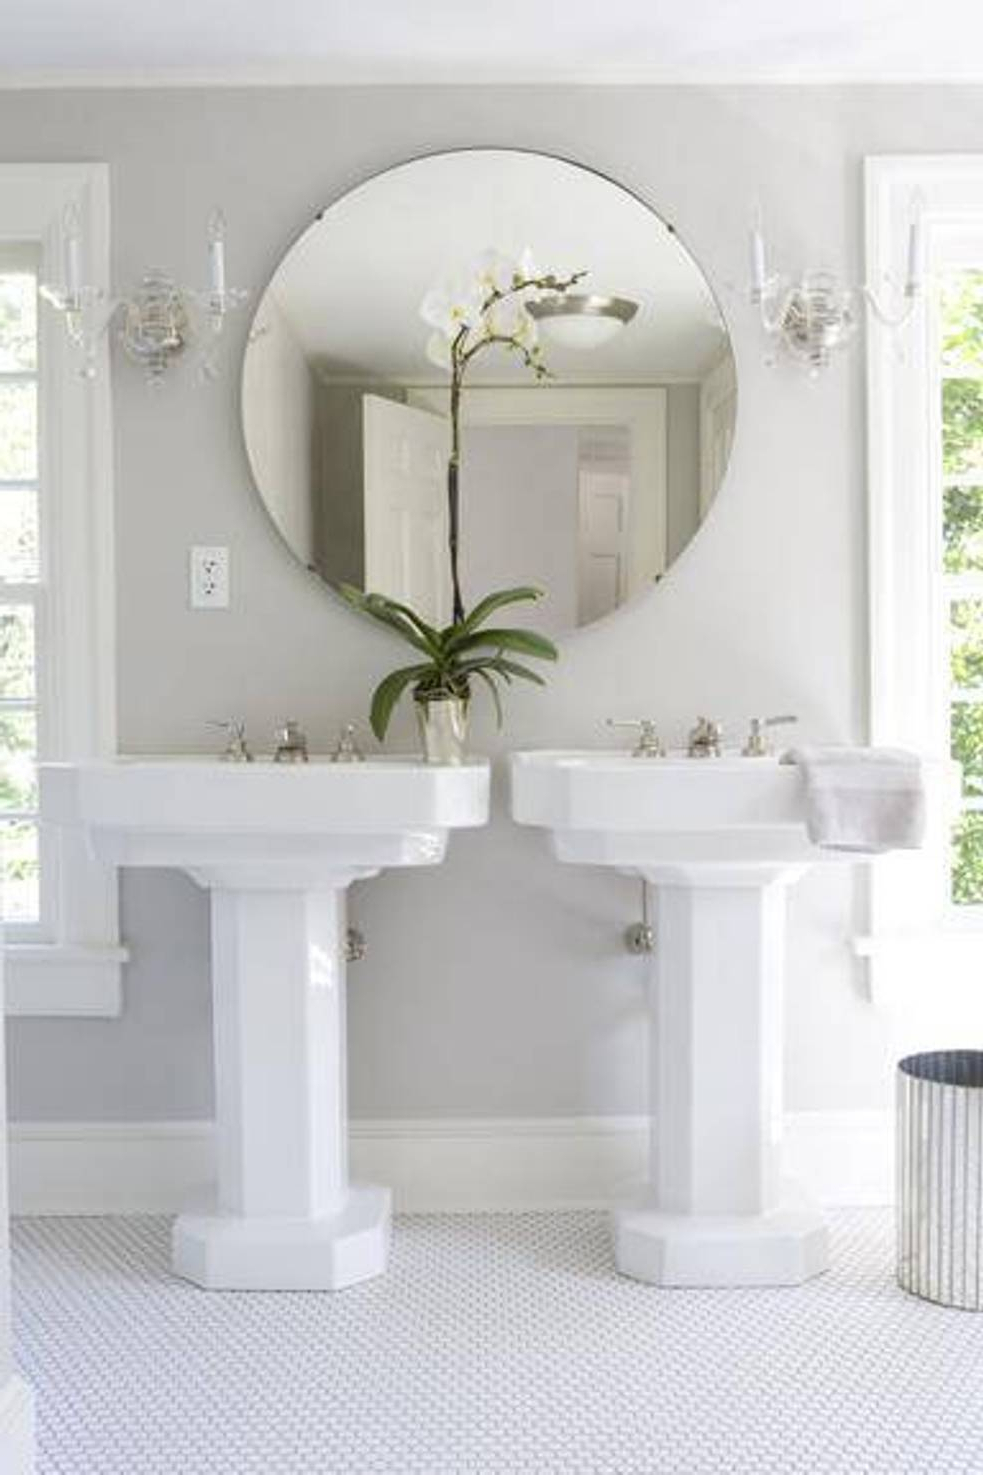 Large Wall Mirrors Without Frame Within Most Up To Date Large Round Mirror Without Frame – Mirror Decorating Ideas (Gallery 12 of 20)